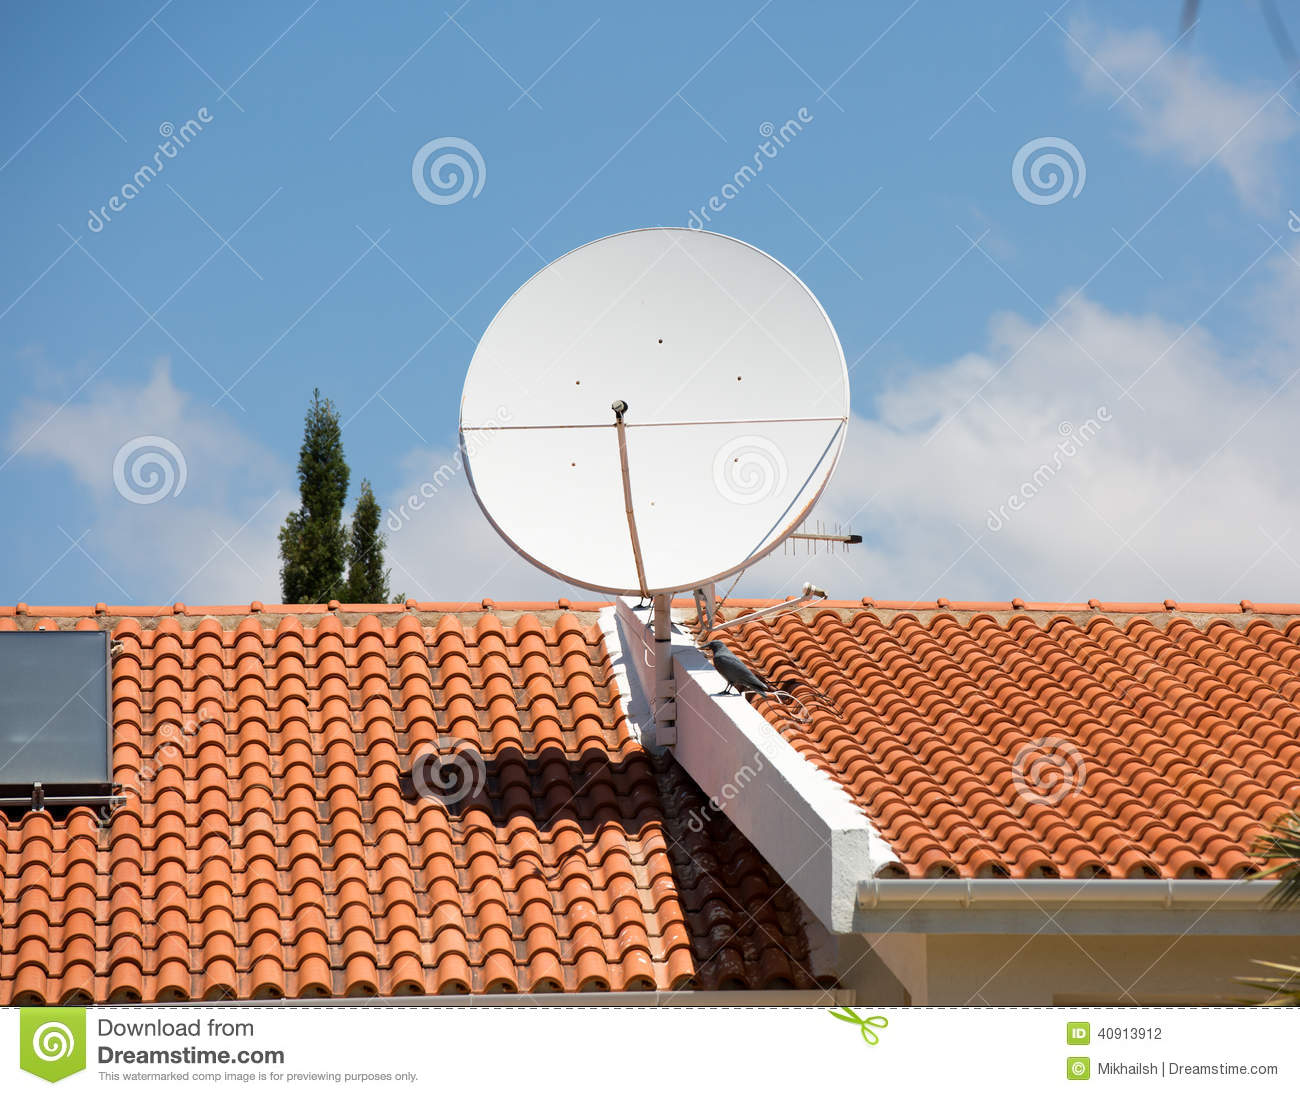 Tv antenna on the red tile roof